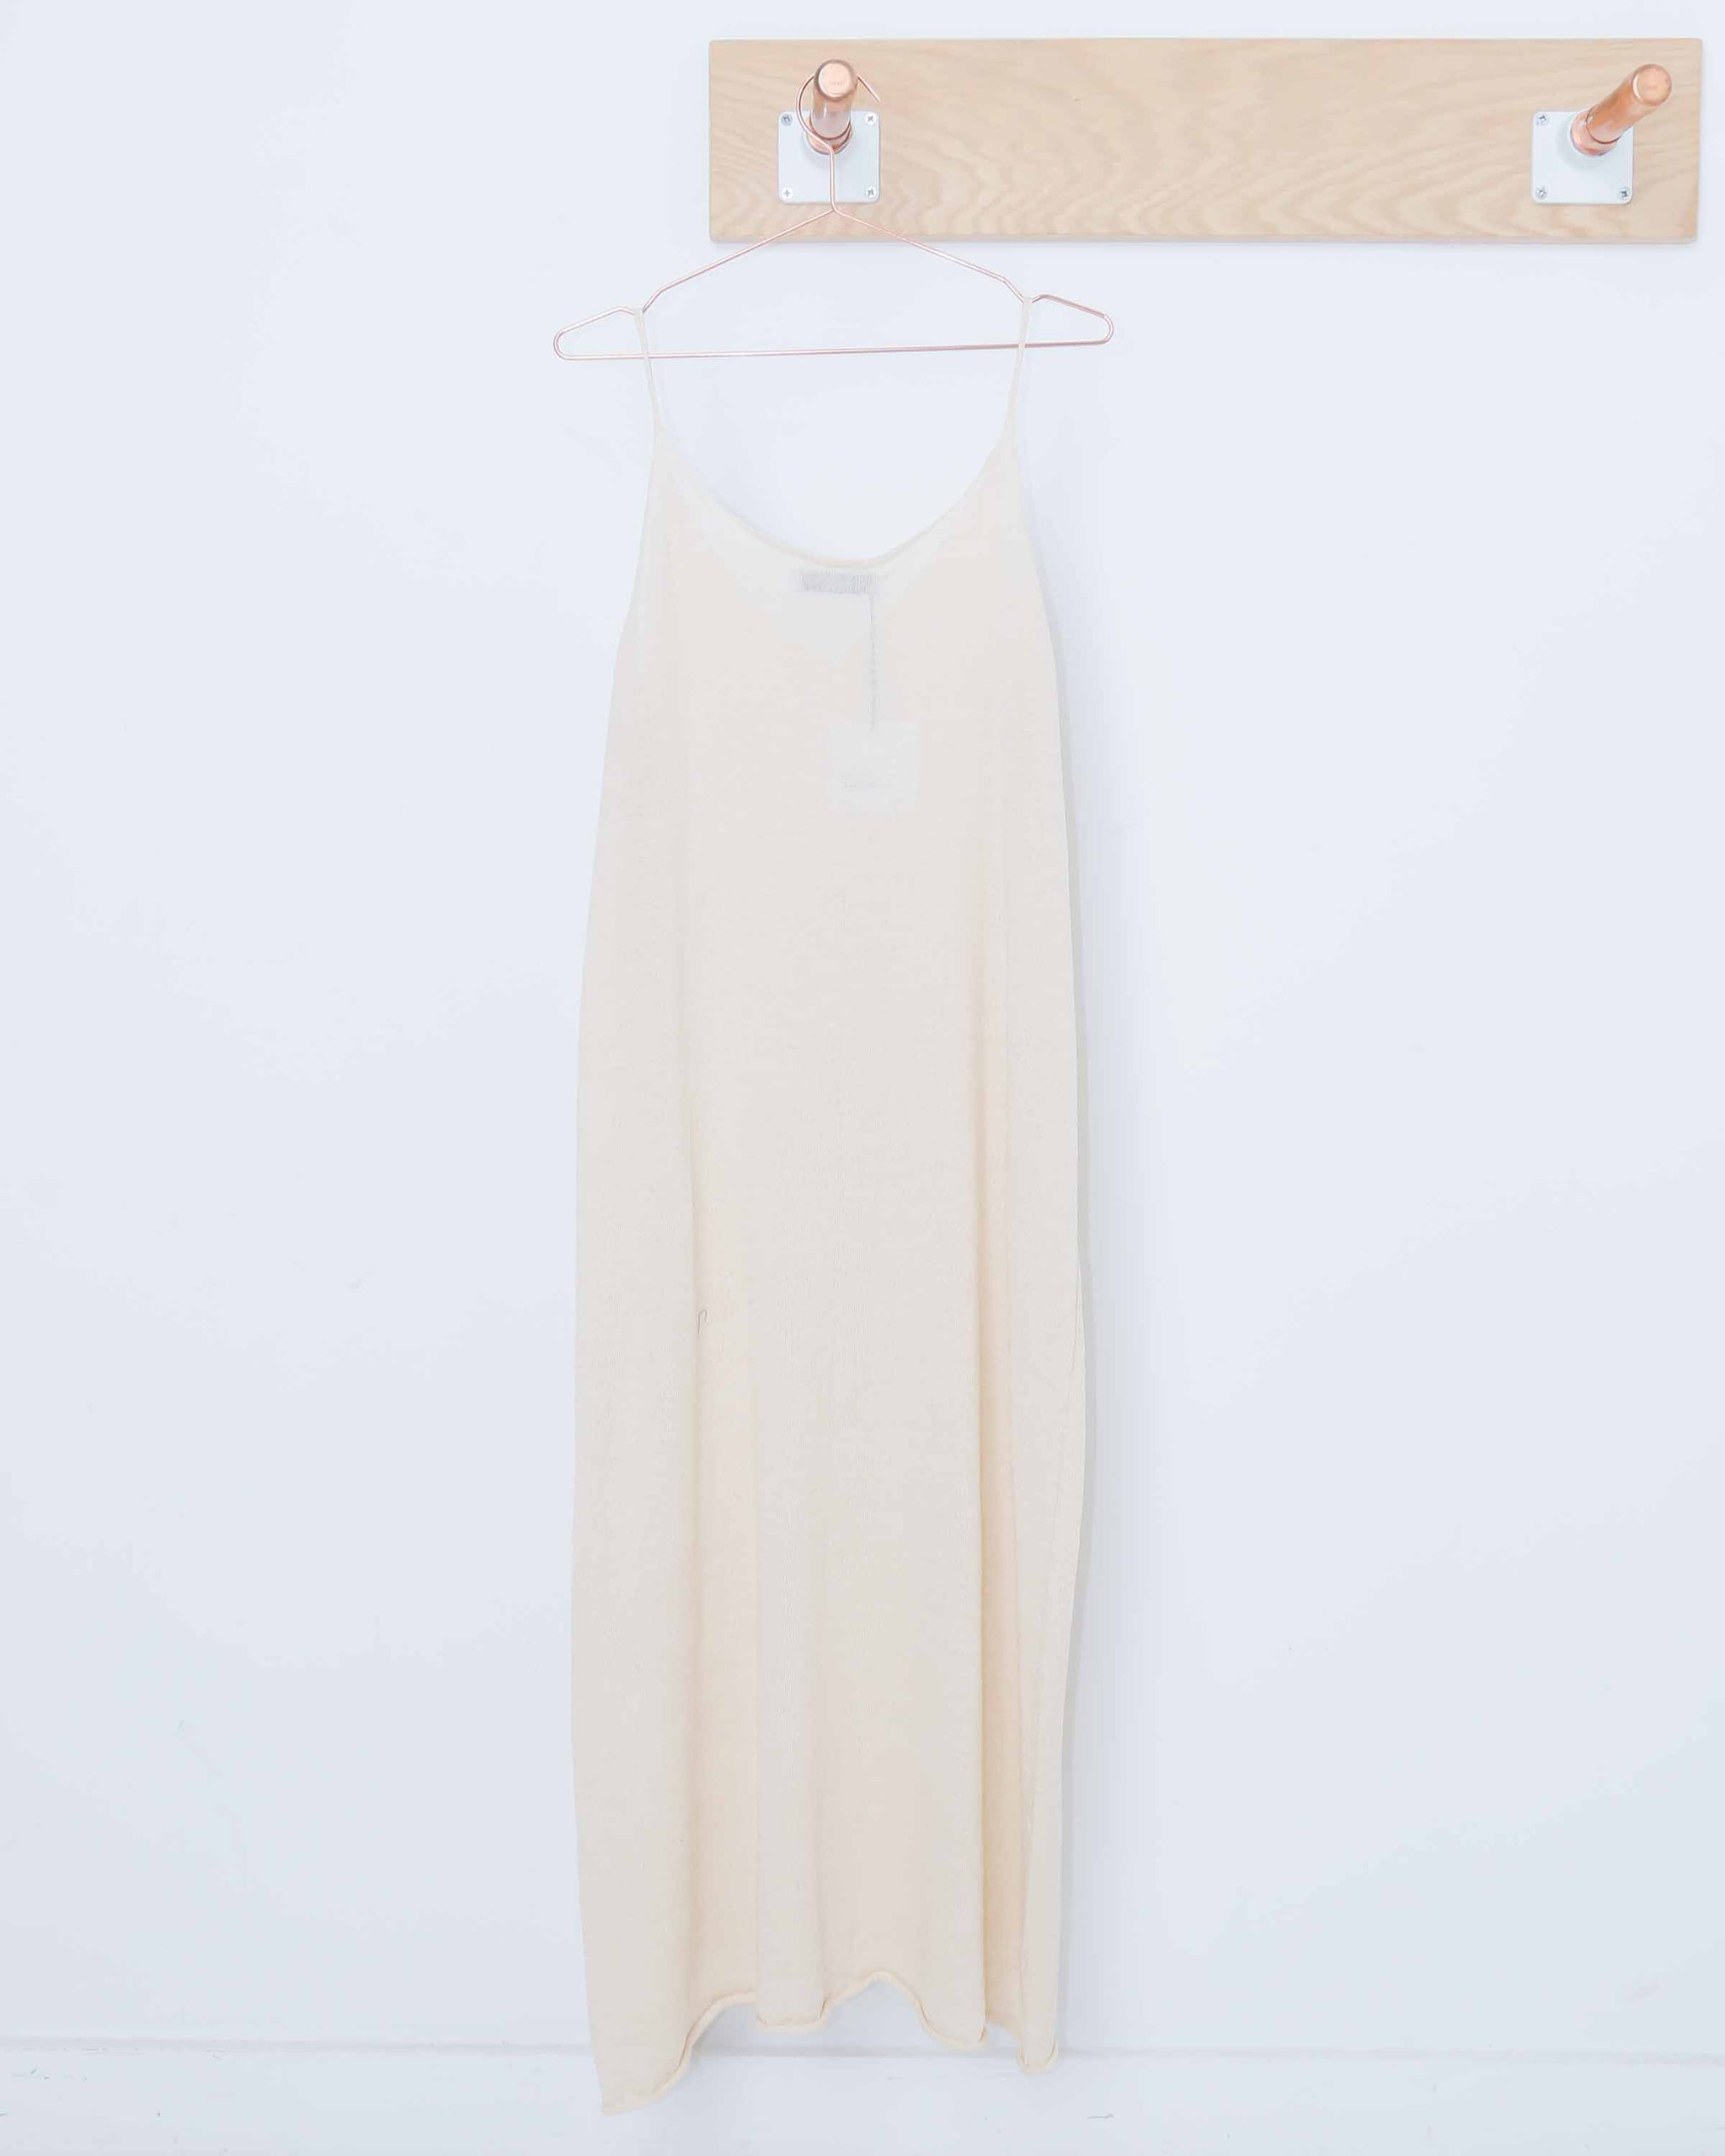 Khaki Linen Sleevess Knit Dress